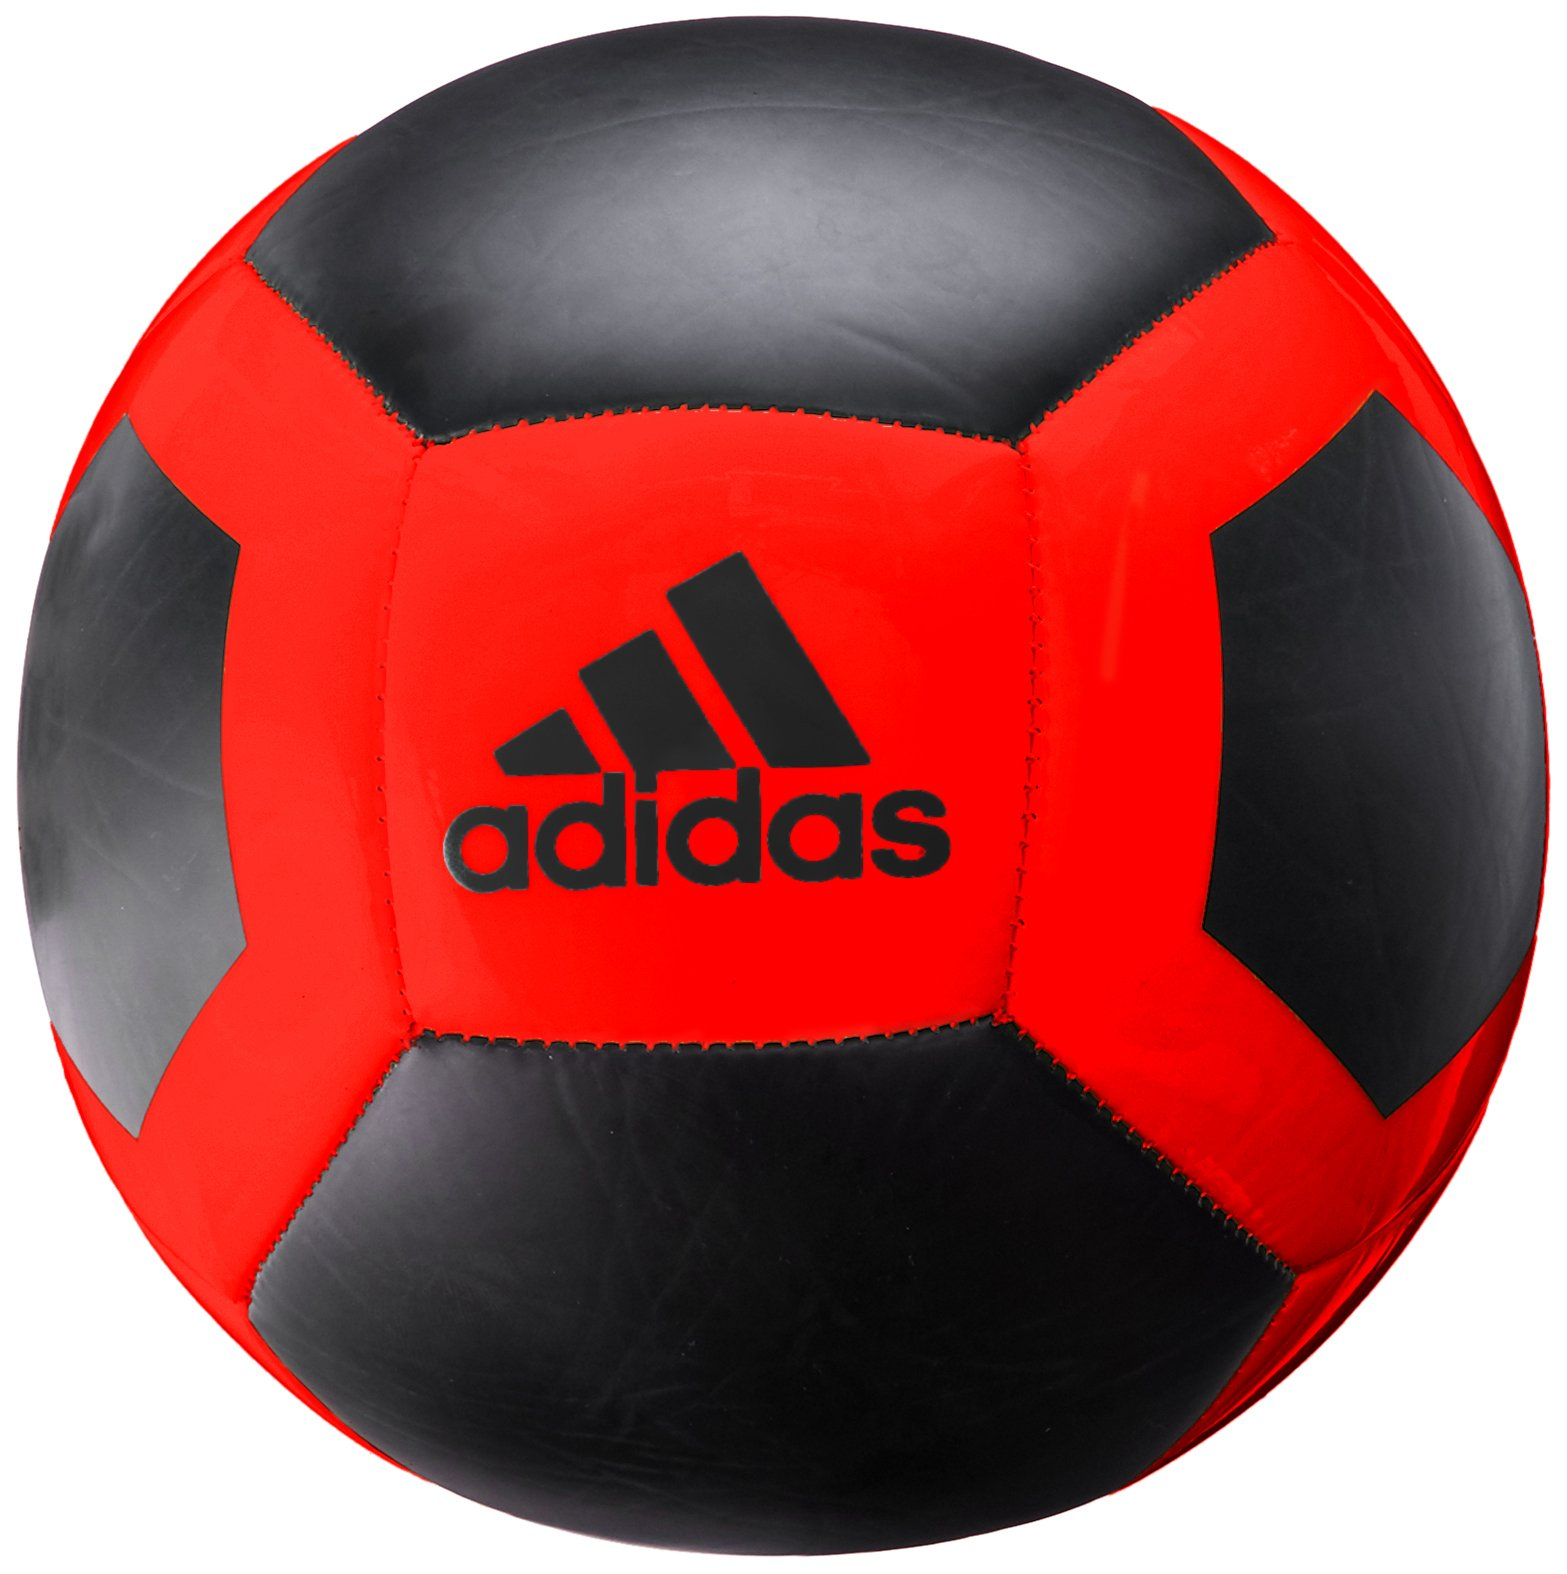 adidas Performance Glider II Soccer Ball, Core Black/Solar Red, Size 3